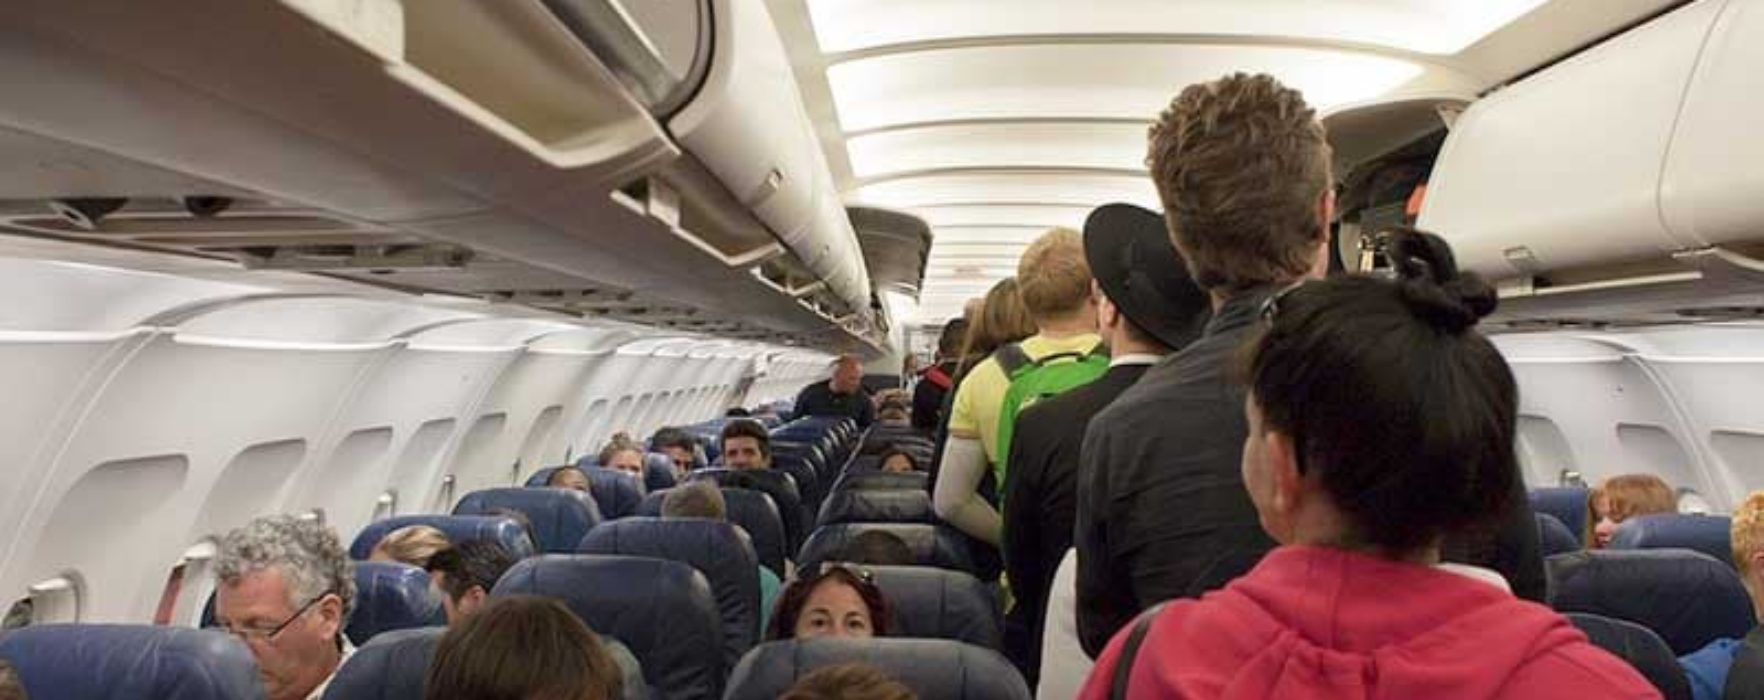 Are new 'basic-economy' fares on long-haul flights worth the squeeze?